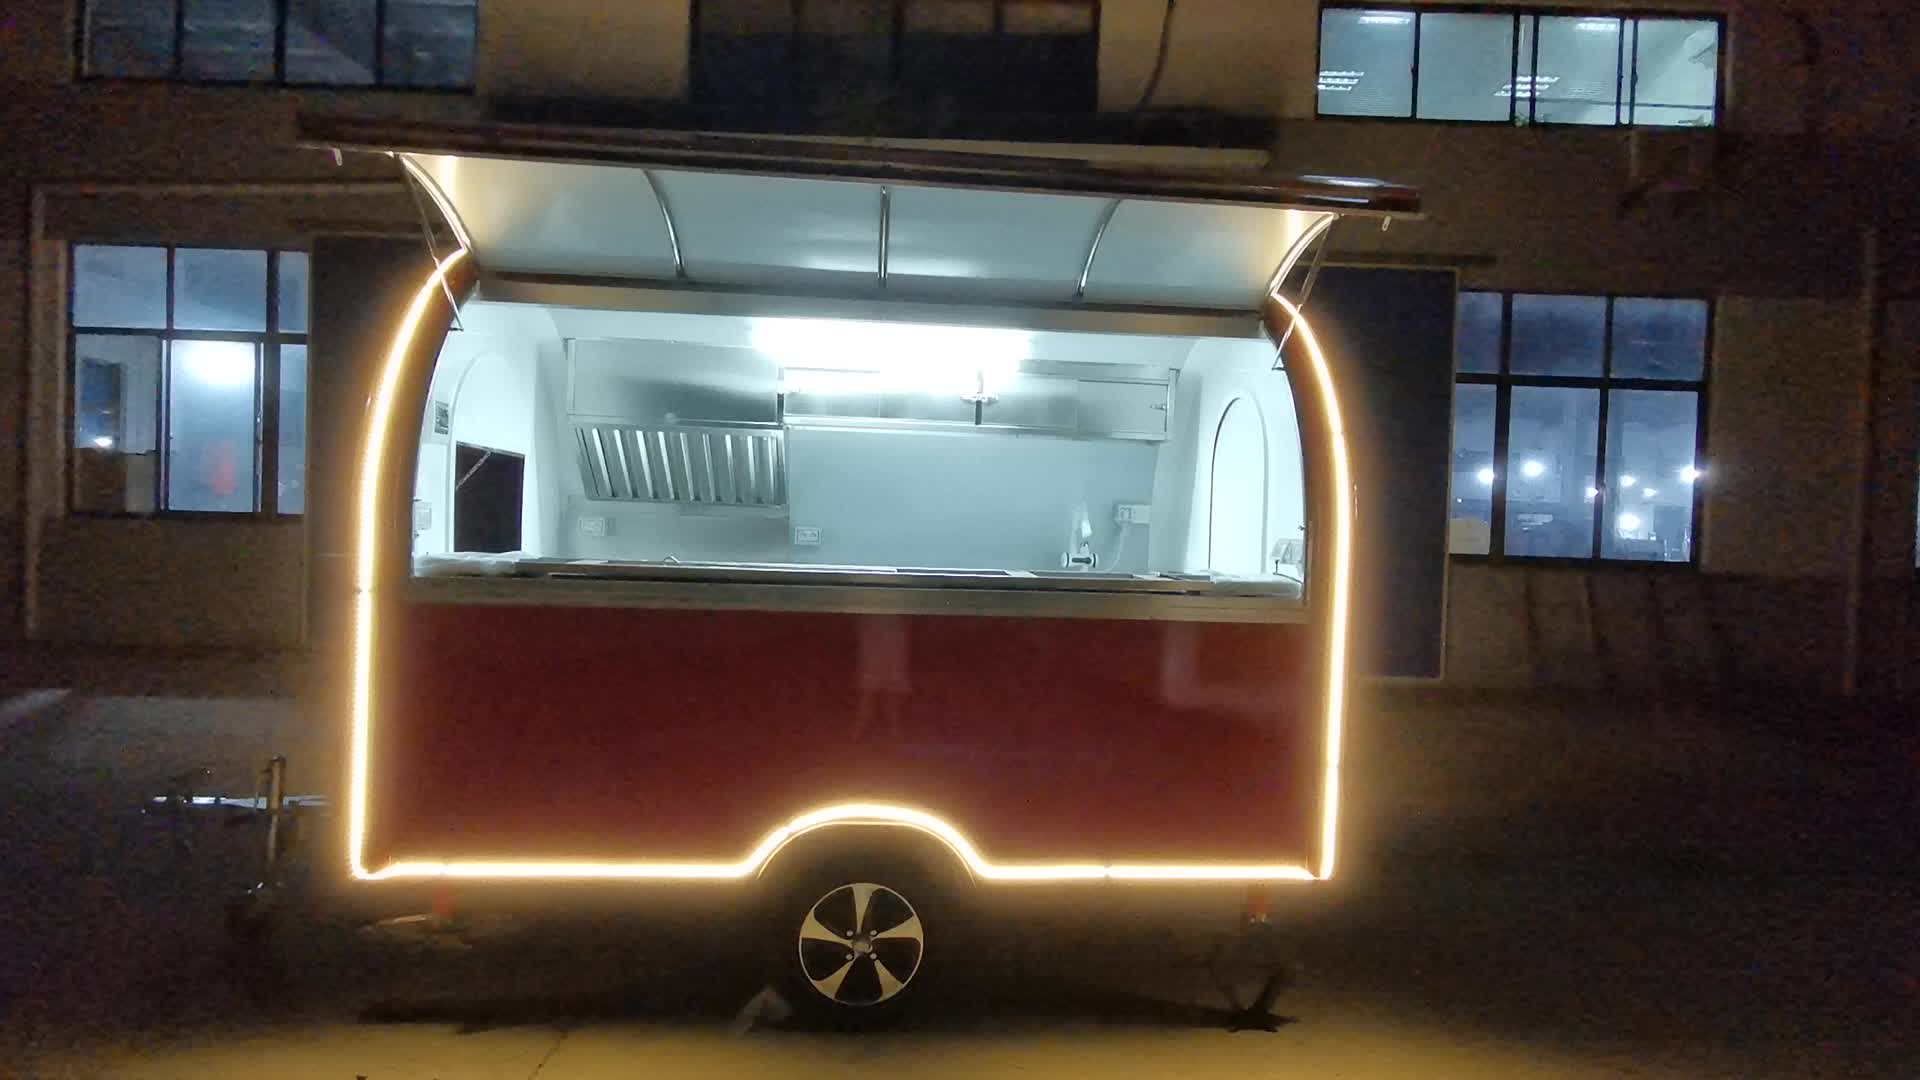 Street Fast Food Or Fruits Mobile Hotdog Food Cart From China Major Manufacturer for ice cream